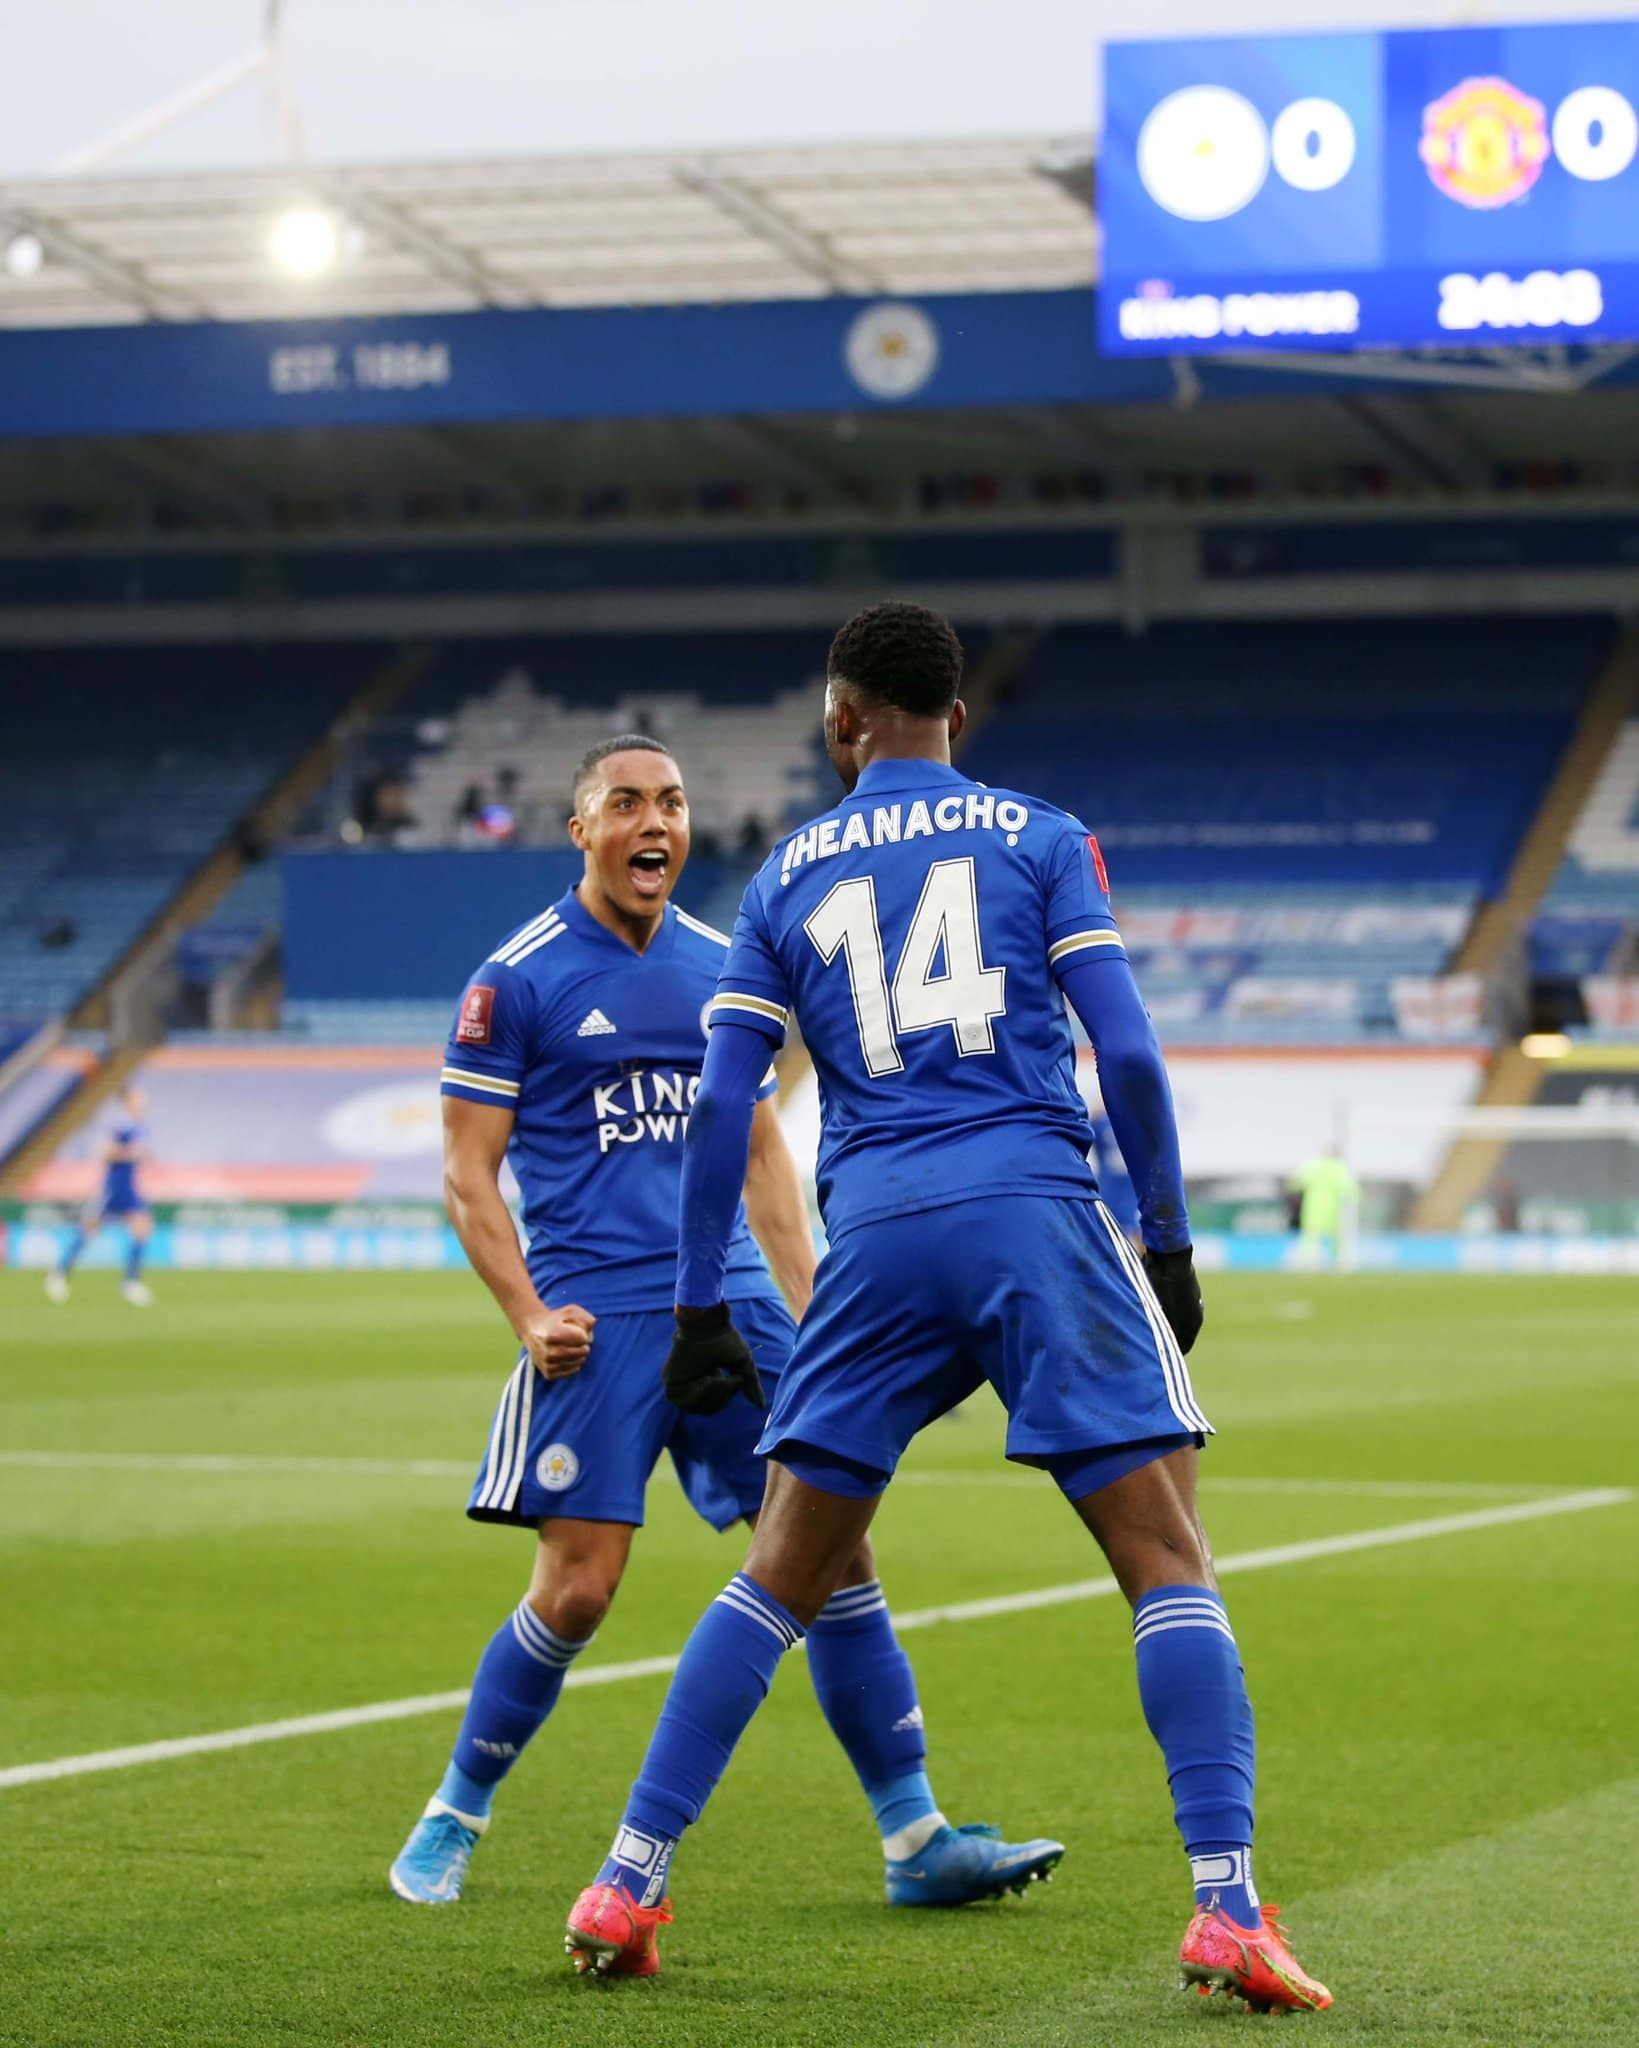 Iheanacho's Brace, Assist Sinks Man United, Sends Leicester Into First FA Cup Semi-finals In 39 Years